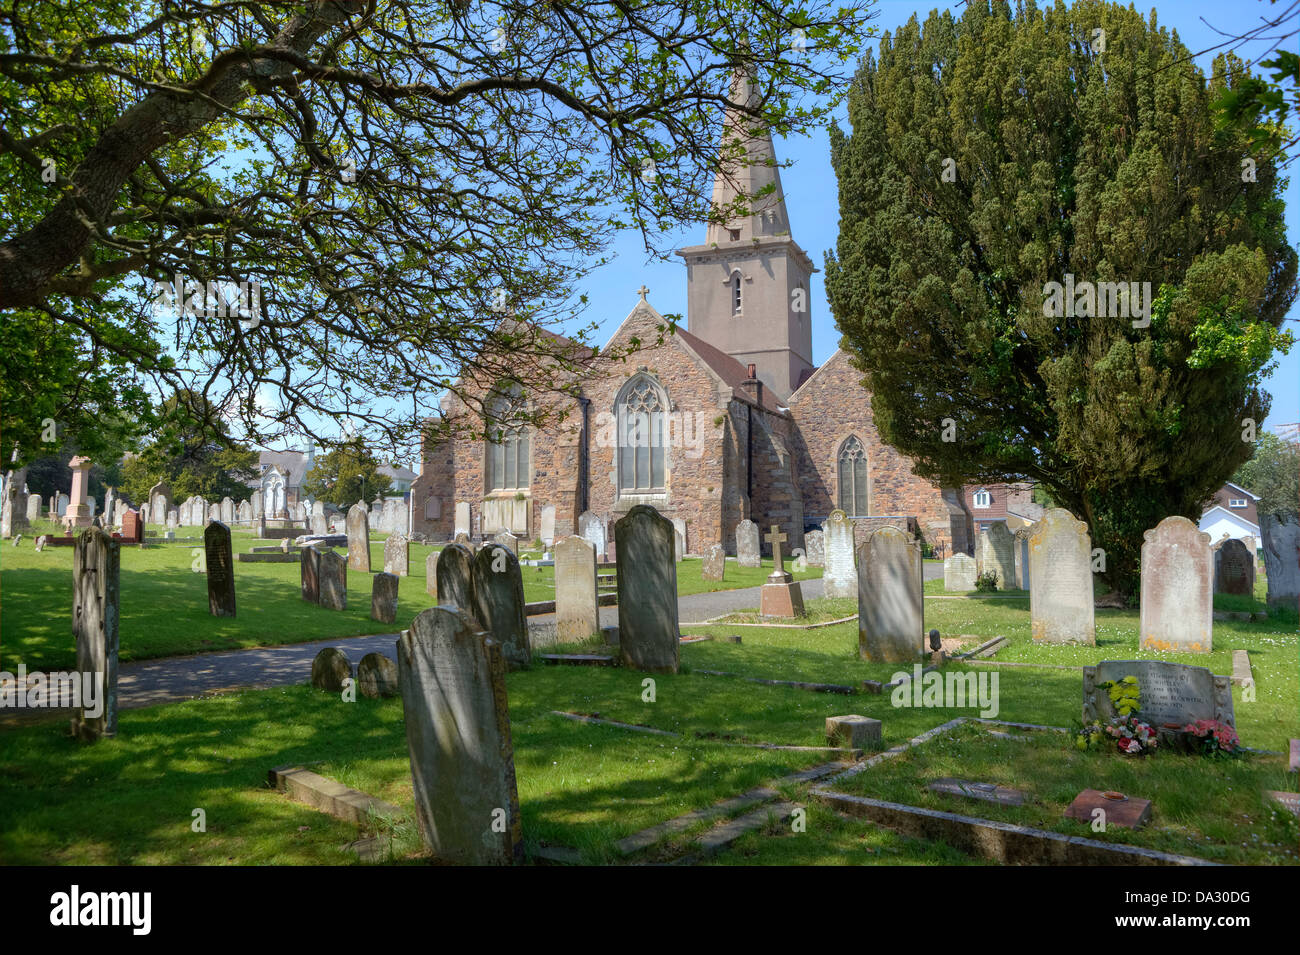 St Martin, Le Veux, parish church, Jersey, United Kingdom - Stock Image